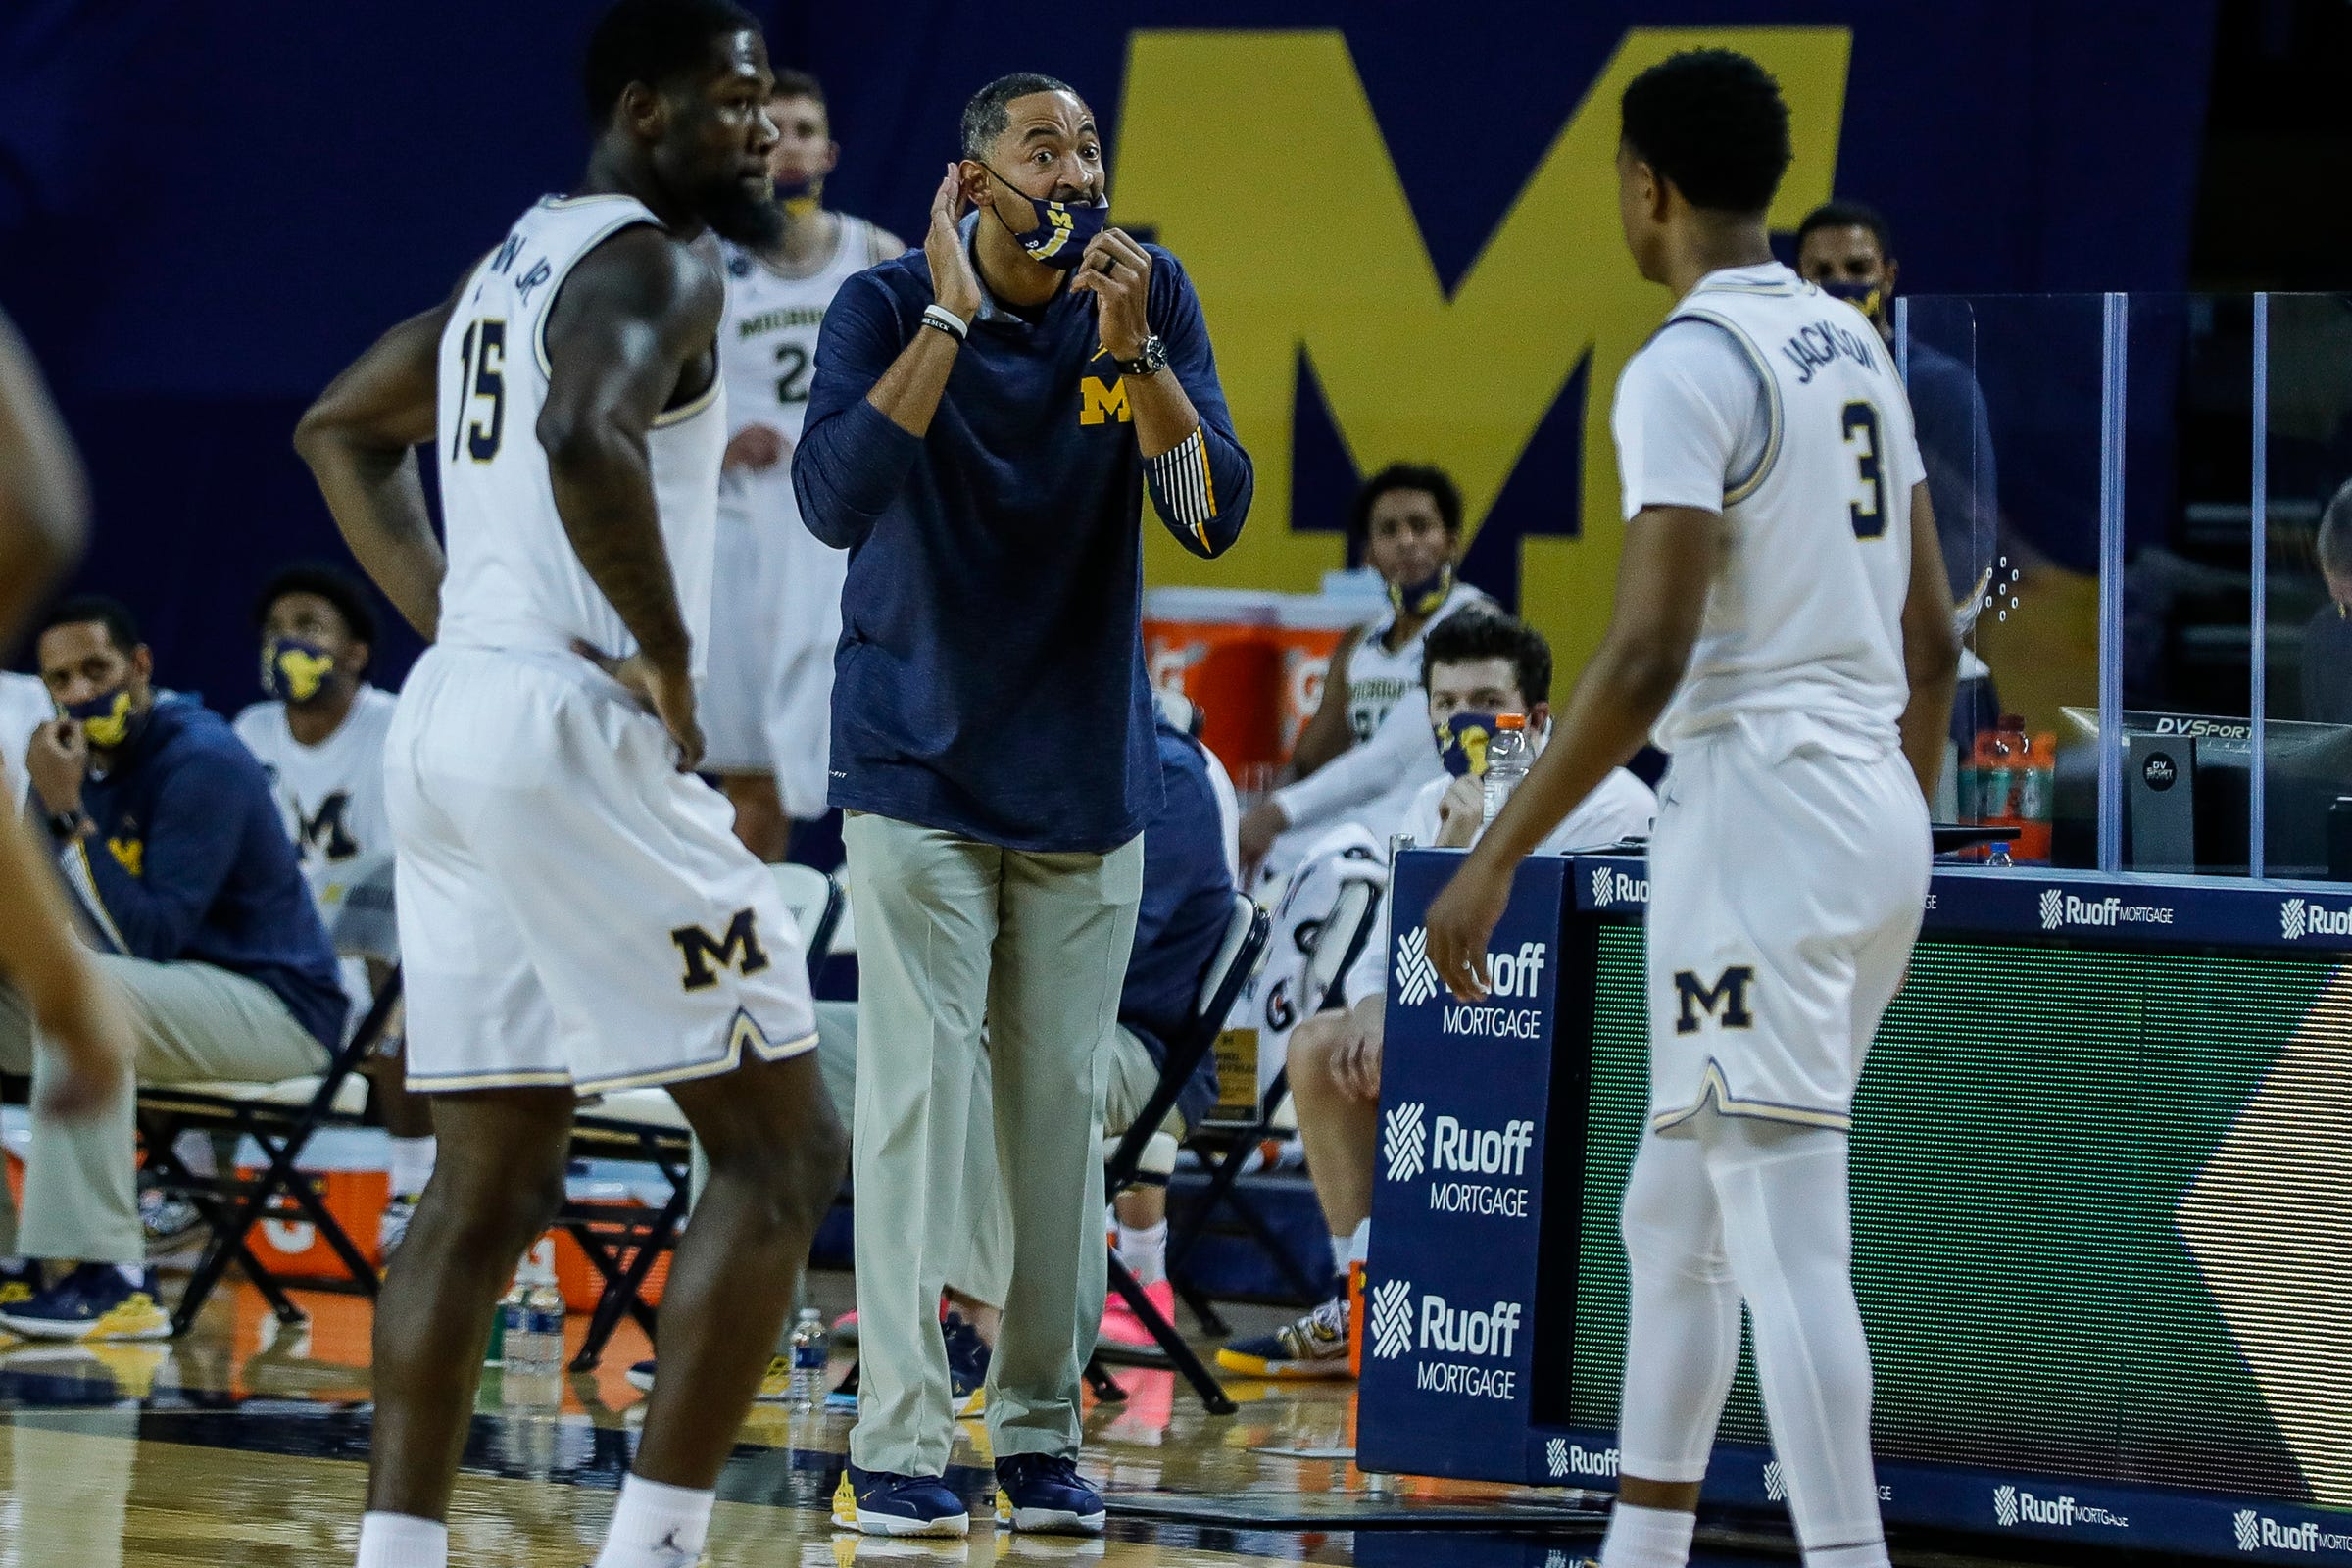 Michigan's Juwan Howard happy to empty bench: We will need everyone on roster